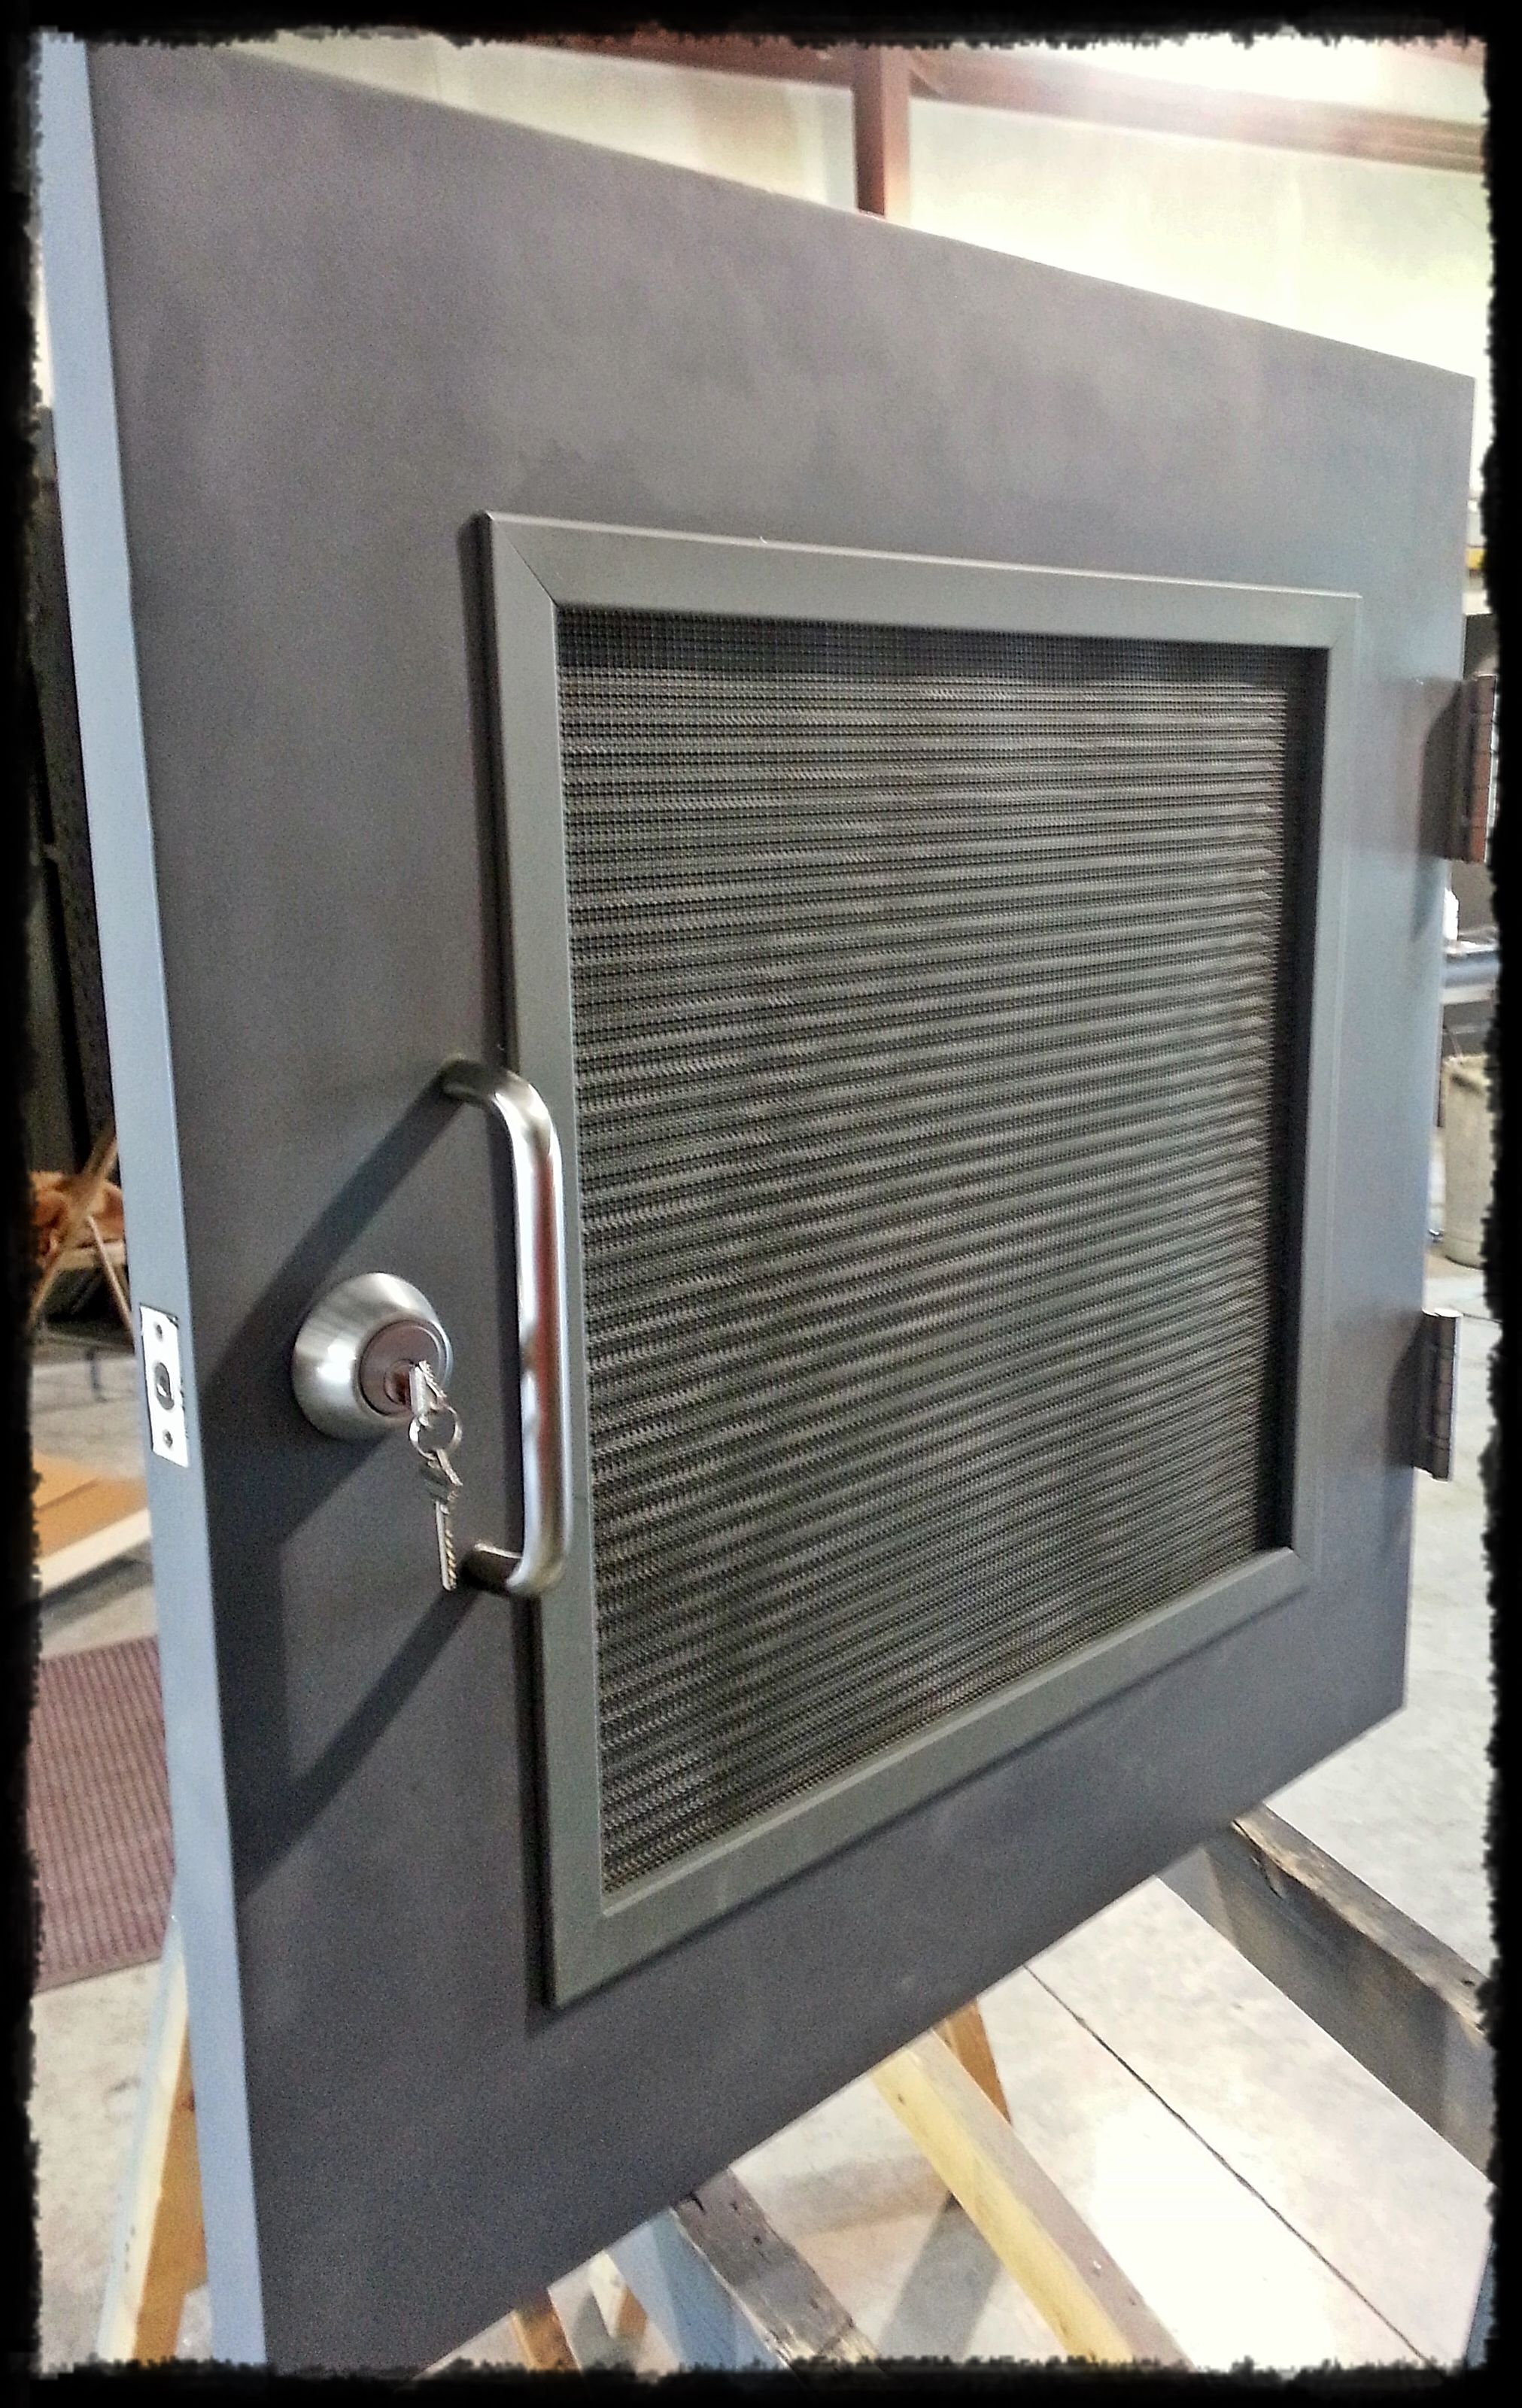 #7E6B4D Pin By House Of Doors On Various Completed Projects  Most Effective 5015 Louvered Exterior Doors Metal pictures with 2023x3201 px on helpvideos.info - Air Conditioners, Air Coolers and more